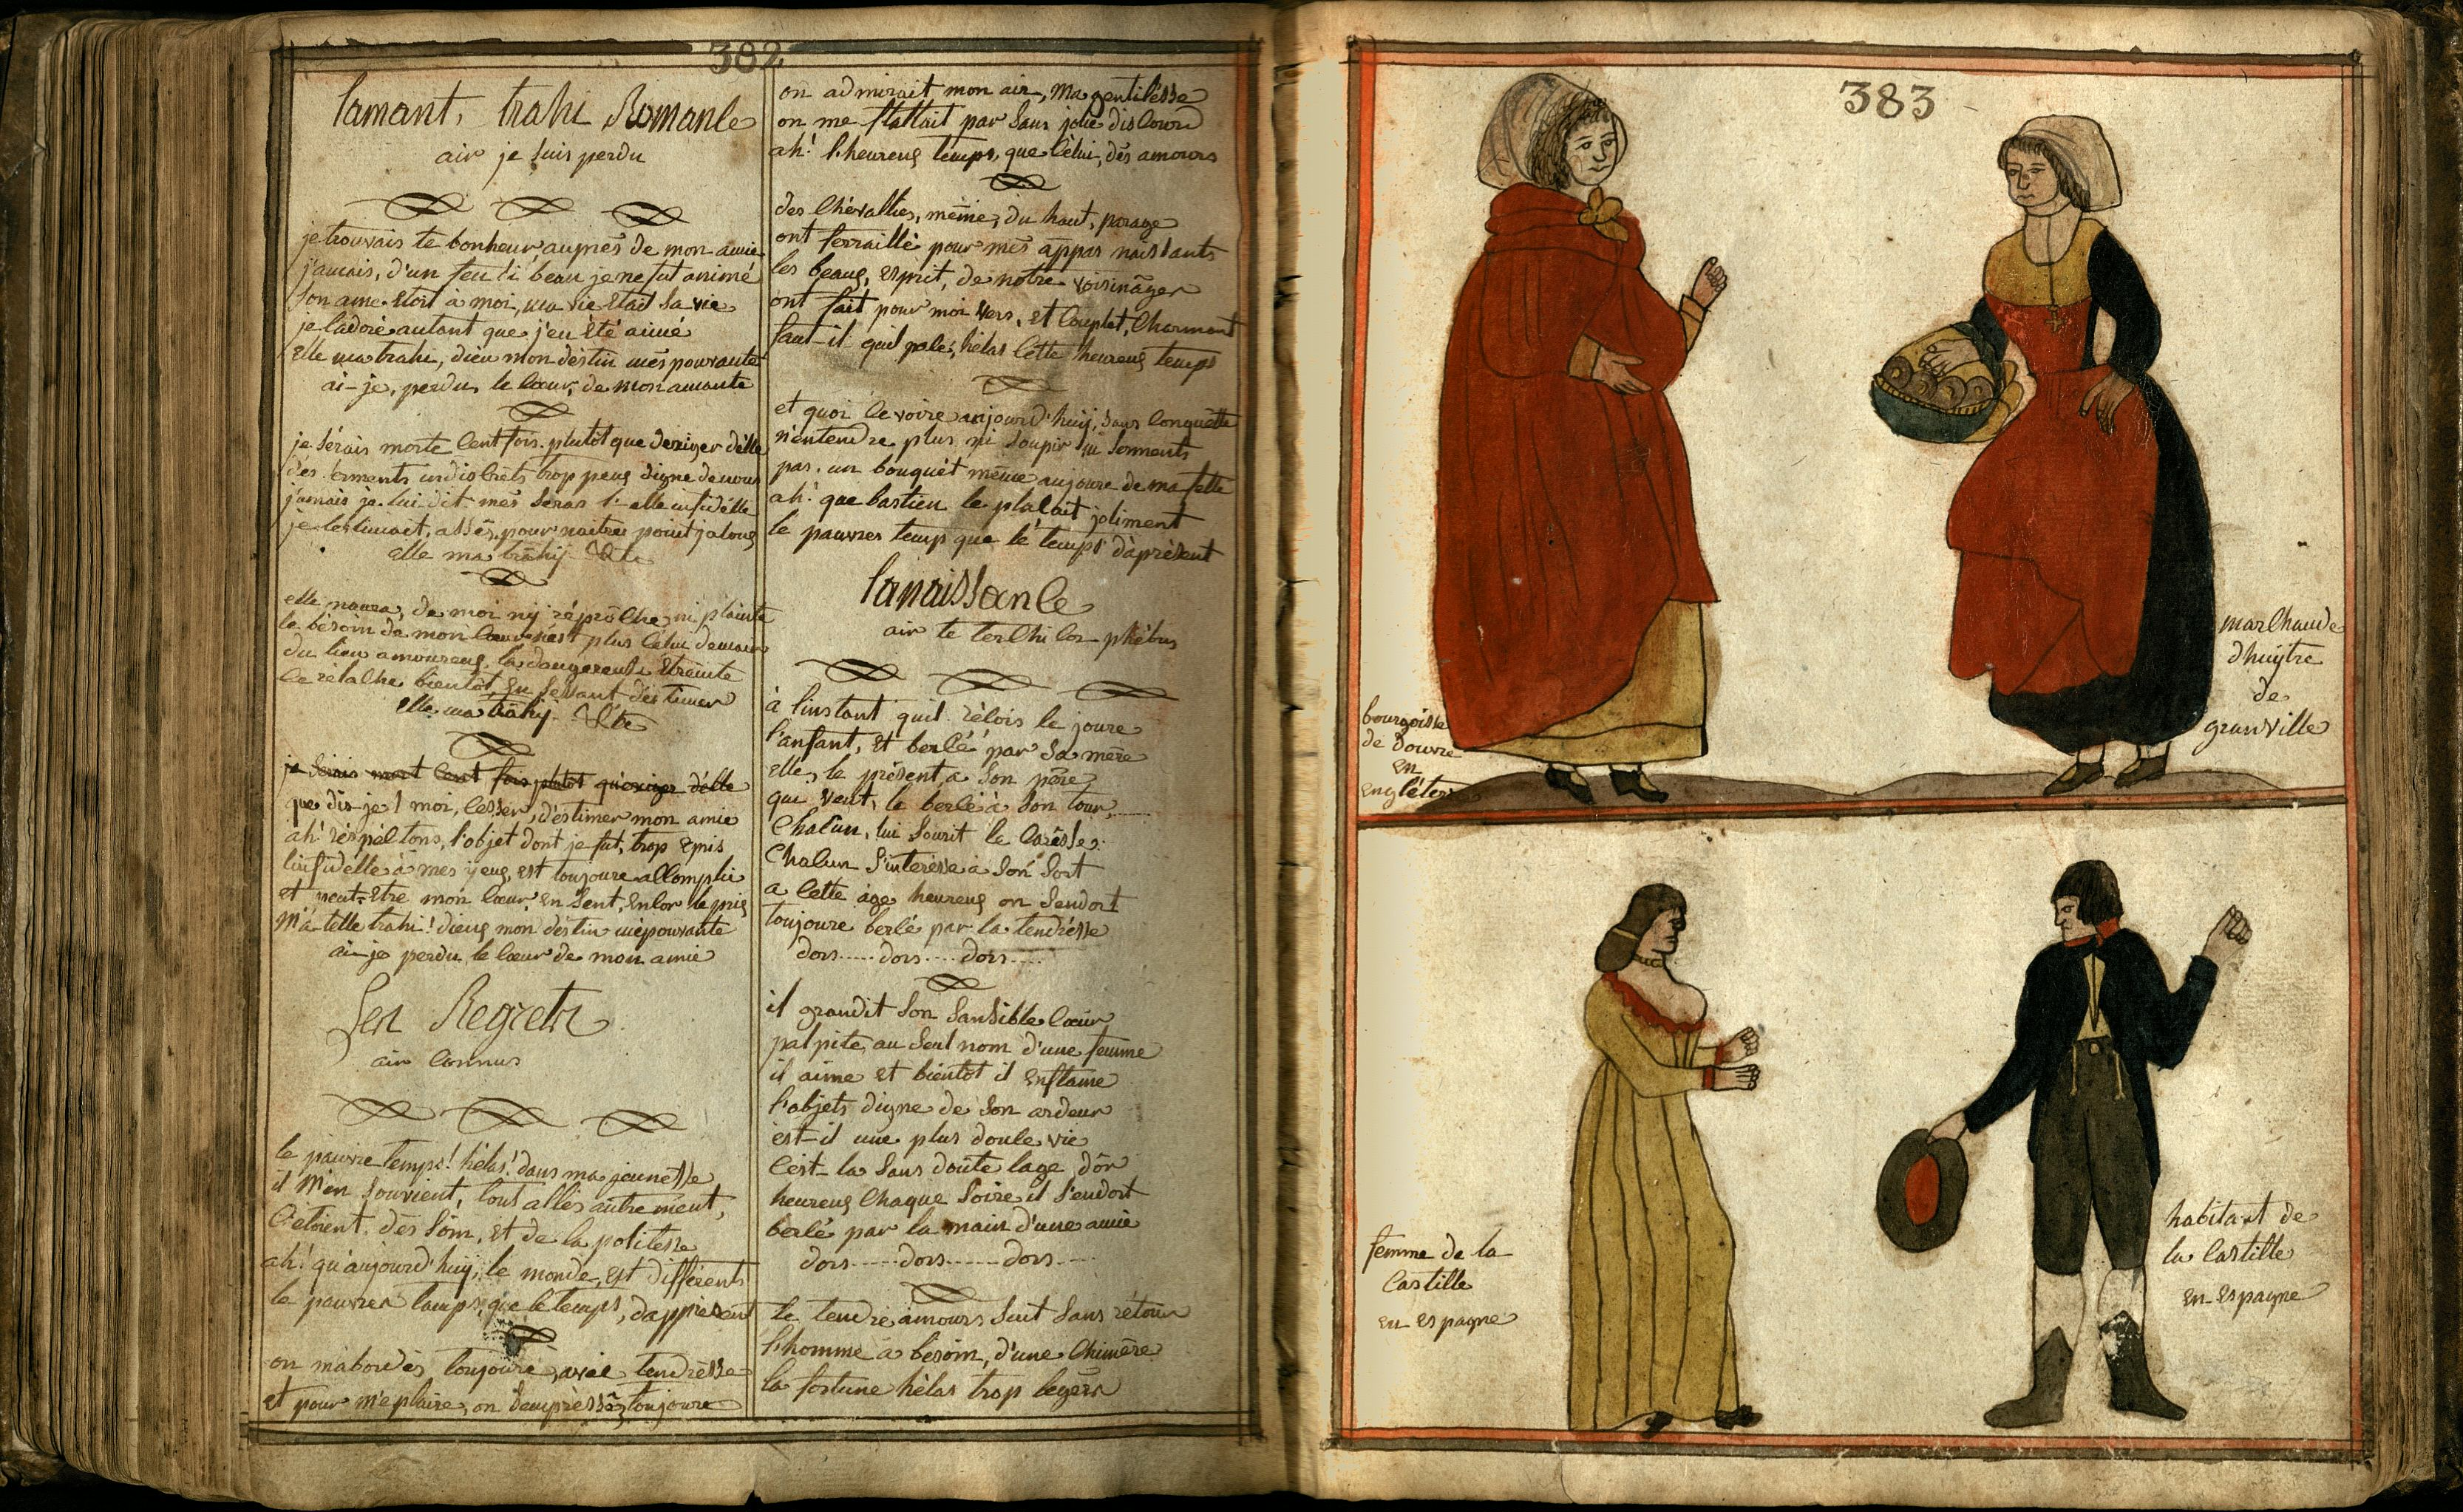 Livre de Raison p. 382-383: French folk songs, and illustrations representing a townswoman from Dover and an oyster seller from Granville (top), and a couple from Castile, Spain (bottom)